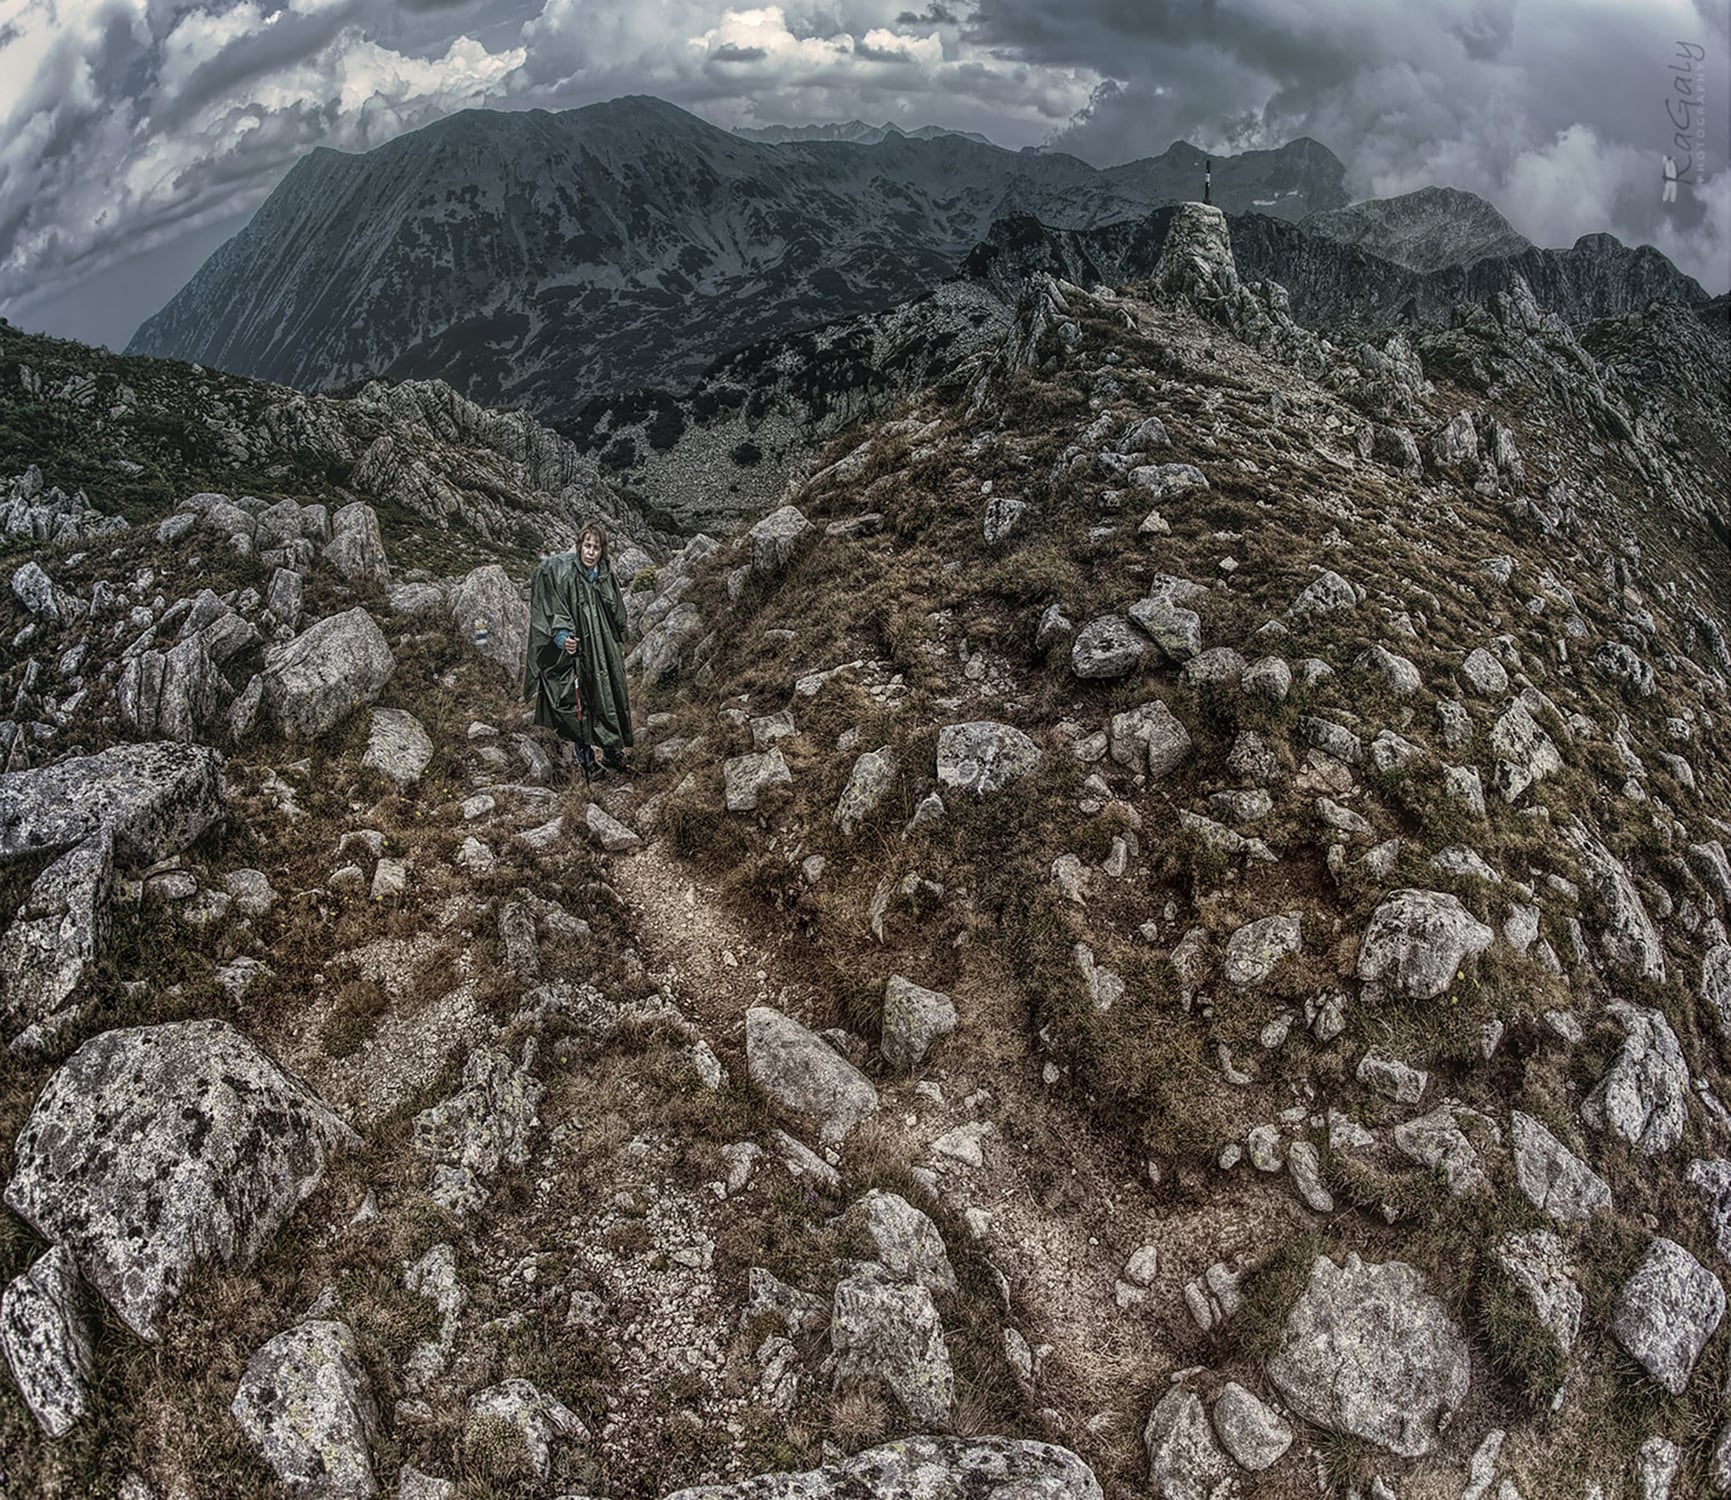 Pirin landscape photography